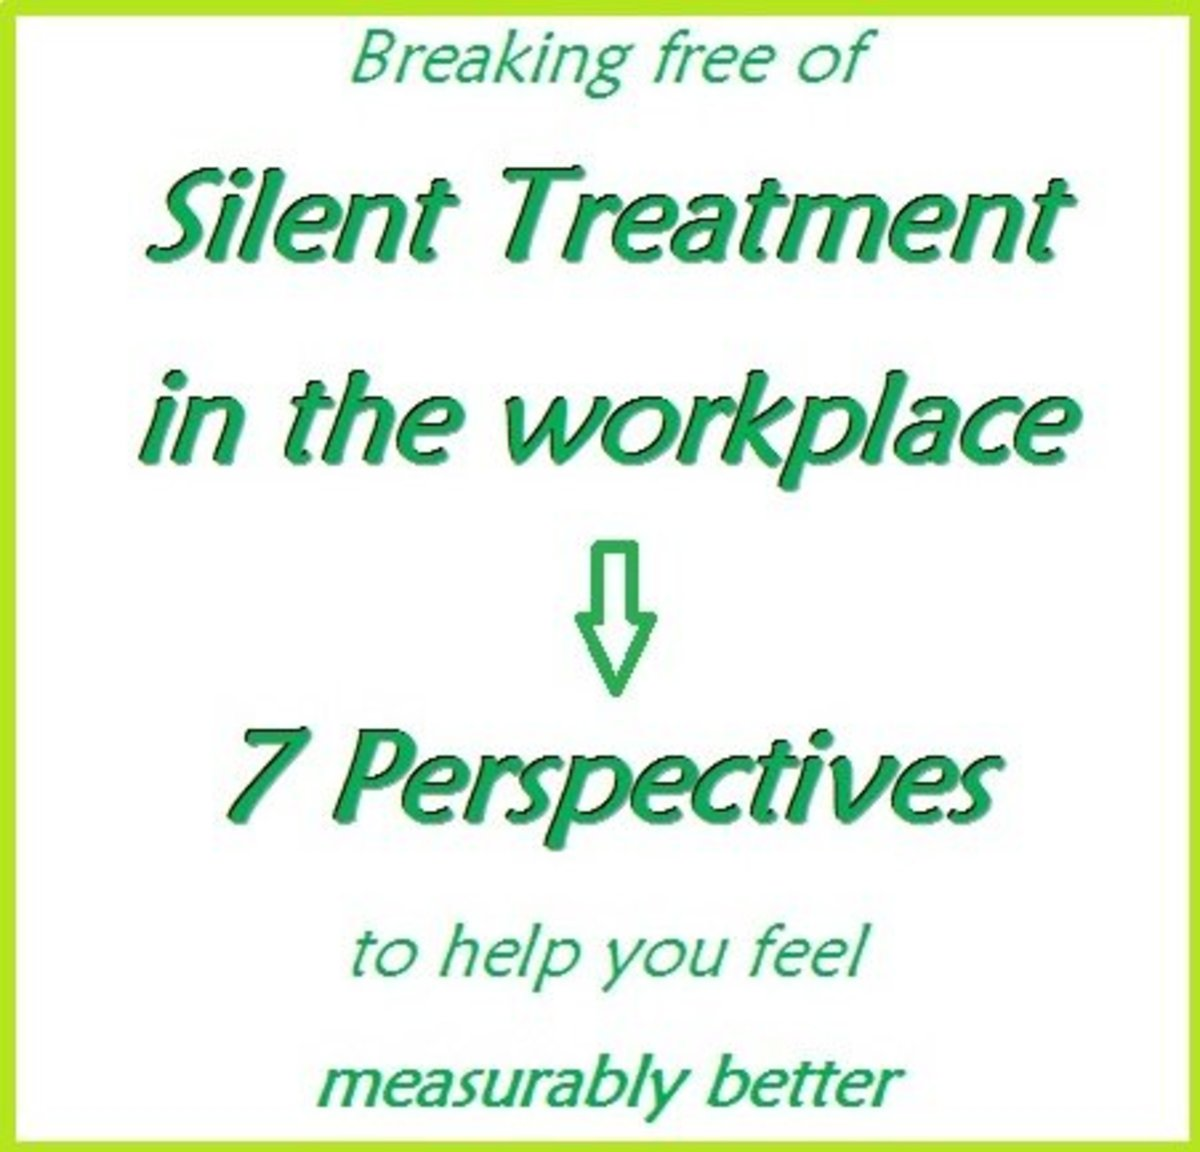 Getting Silent Treatment at Work - What to STOP doing, so that you can START feeling better